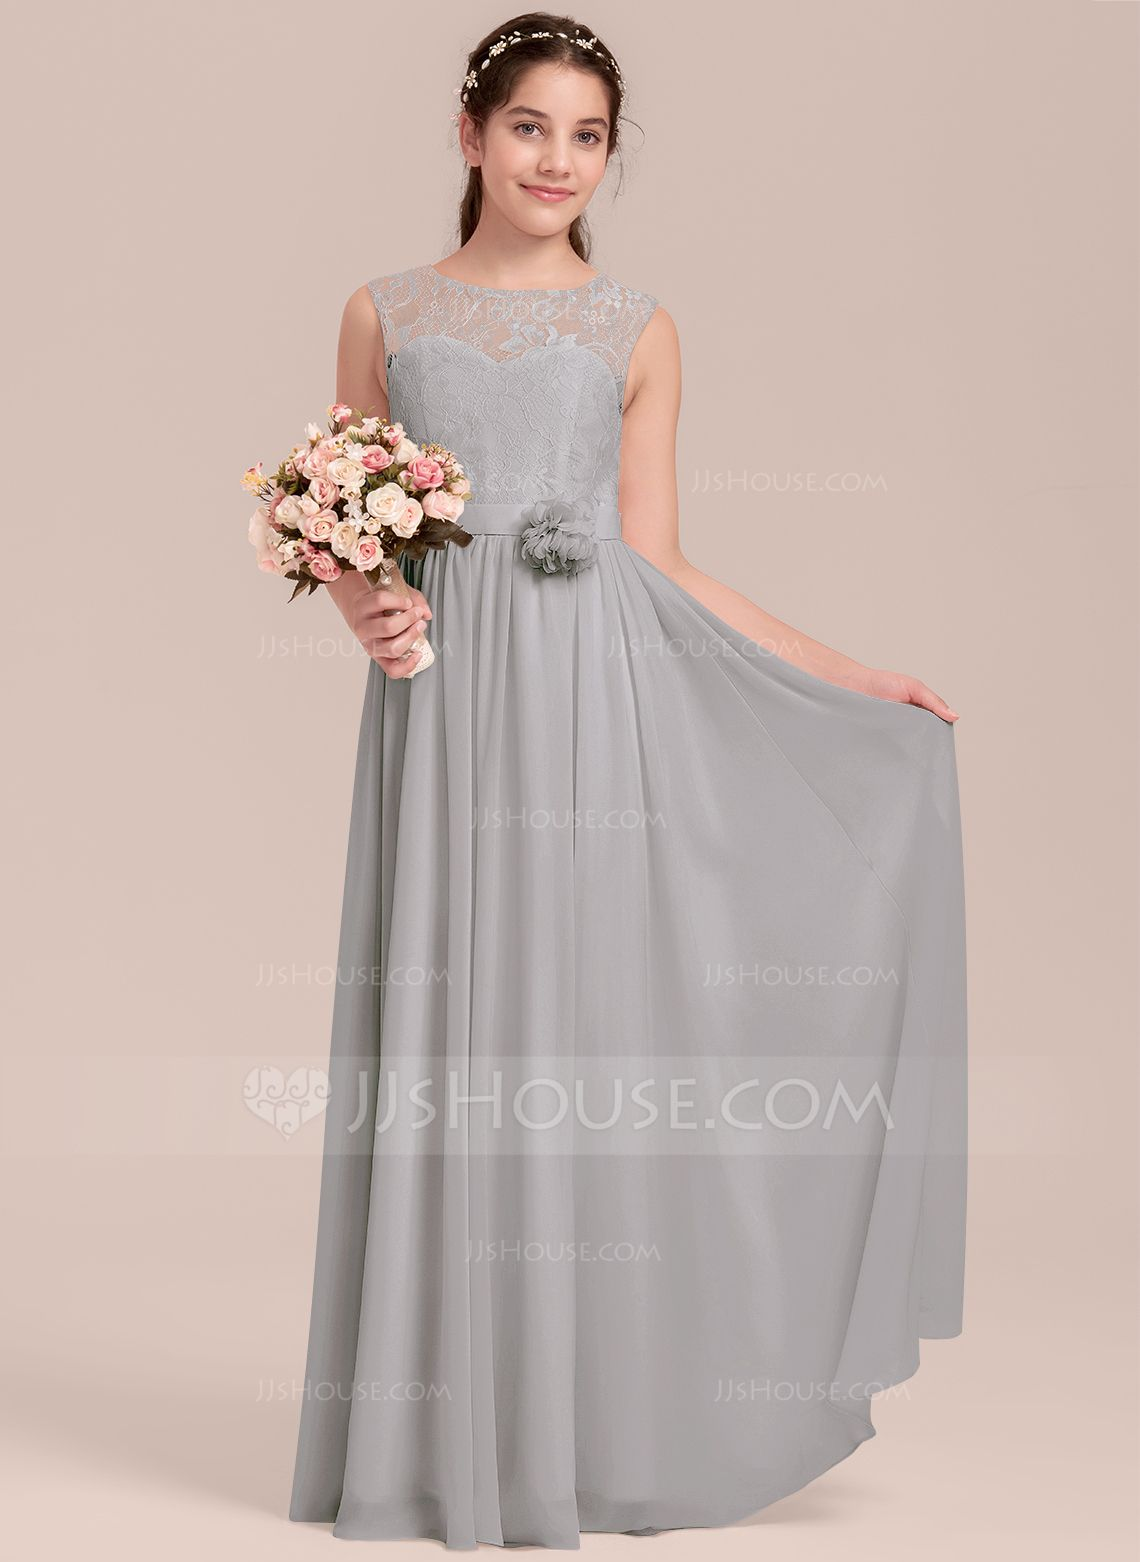 39a21a11f0f A-Line Princess Scoop Neck Floor-Length Chiffon Junior Bridesmaid Dress  With Flower(s) (009130624) - Junior Bridesmaid Dresses - JJsHouse